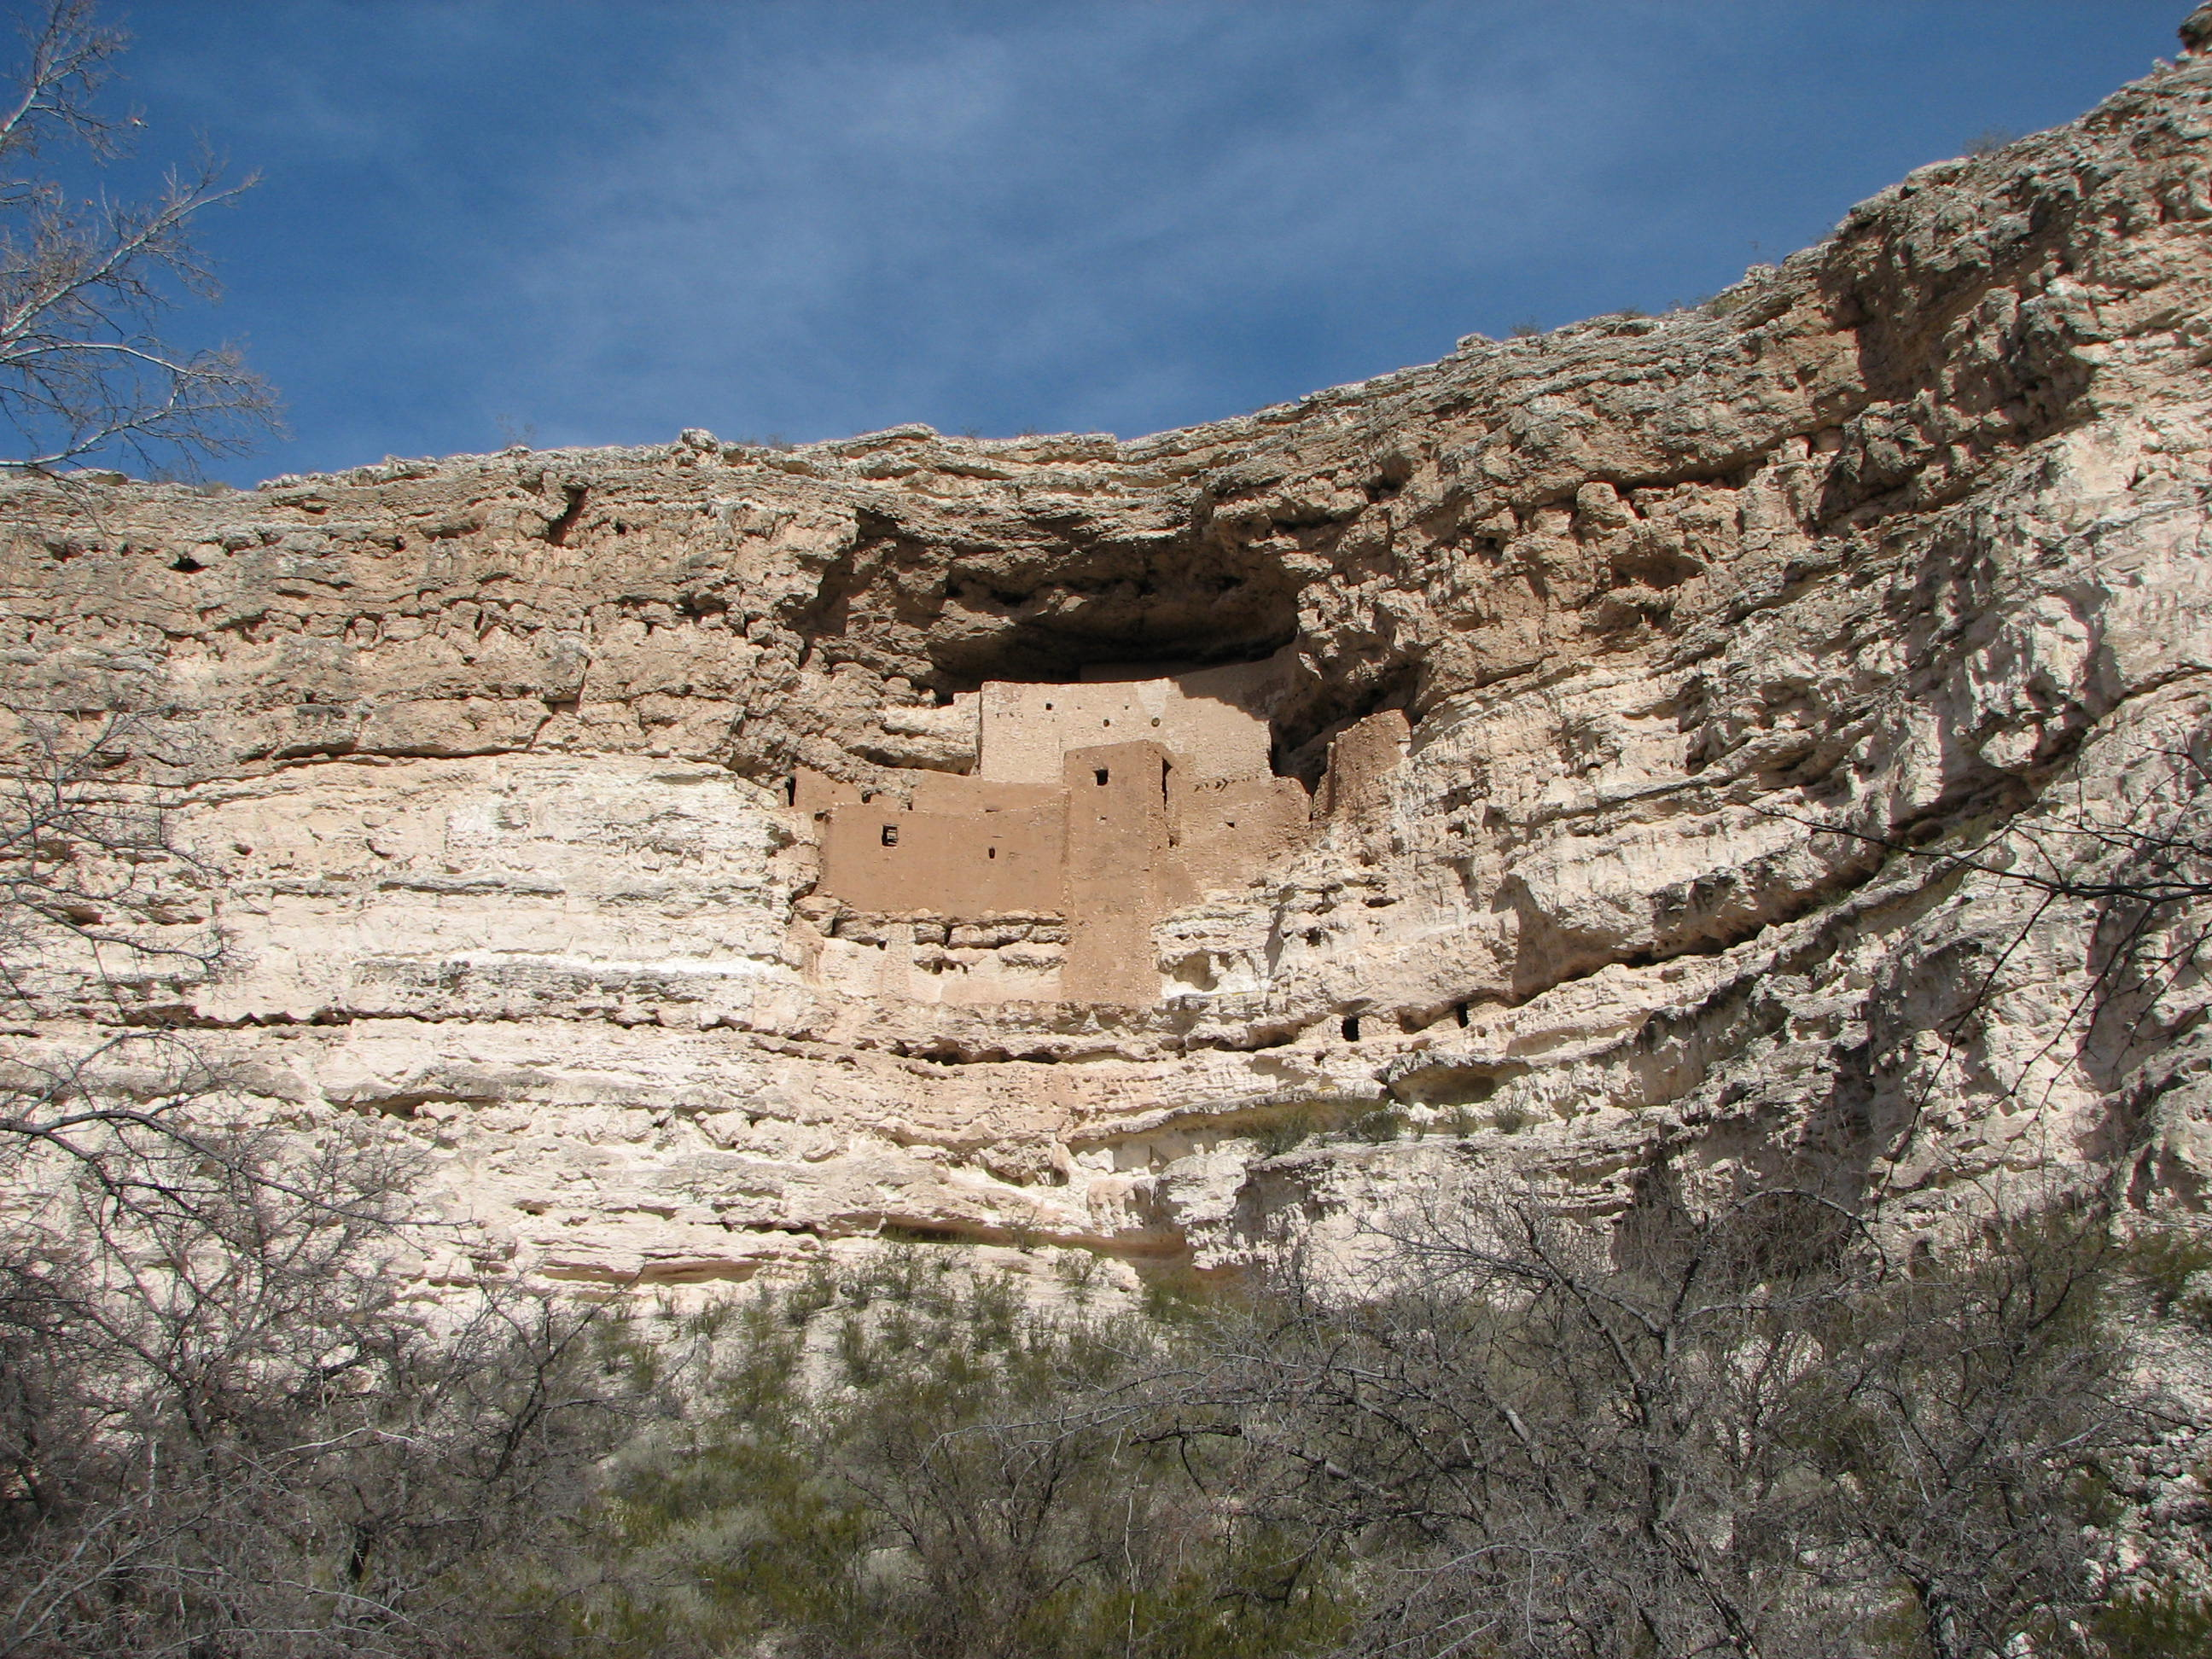 google map usa with File Montezuma Castle National Monument 02 on Mapa Satelital Del Municipio La Blanca t0401241608011606 likewise 53292046 additionally Chalet Grounds additionally File Kotzebue AK   water front besides Index.